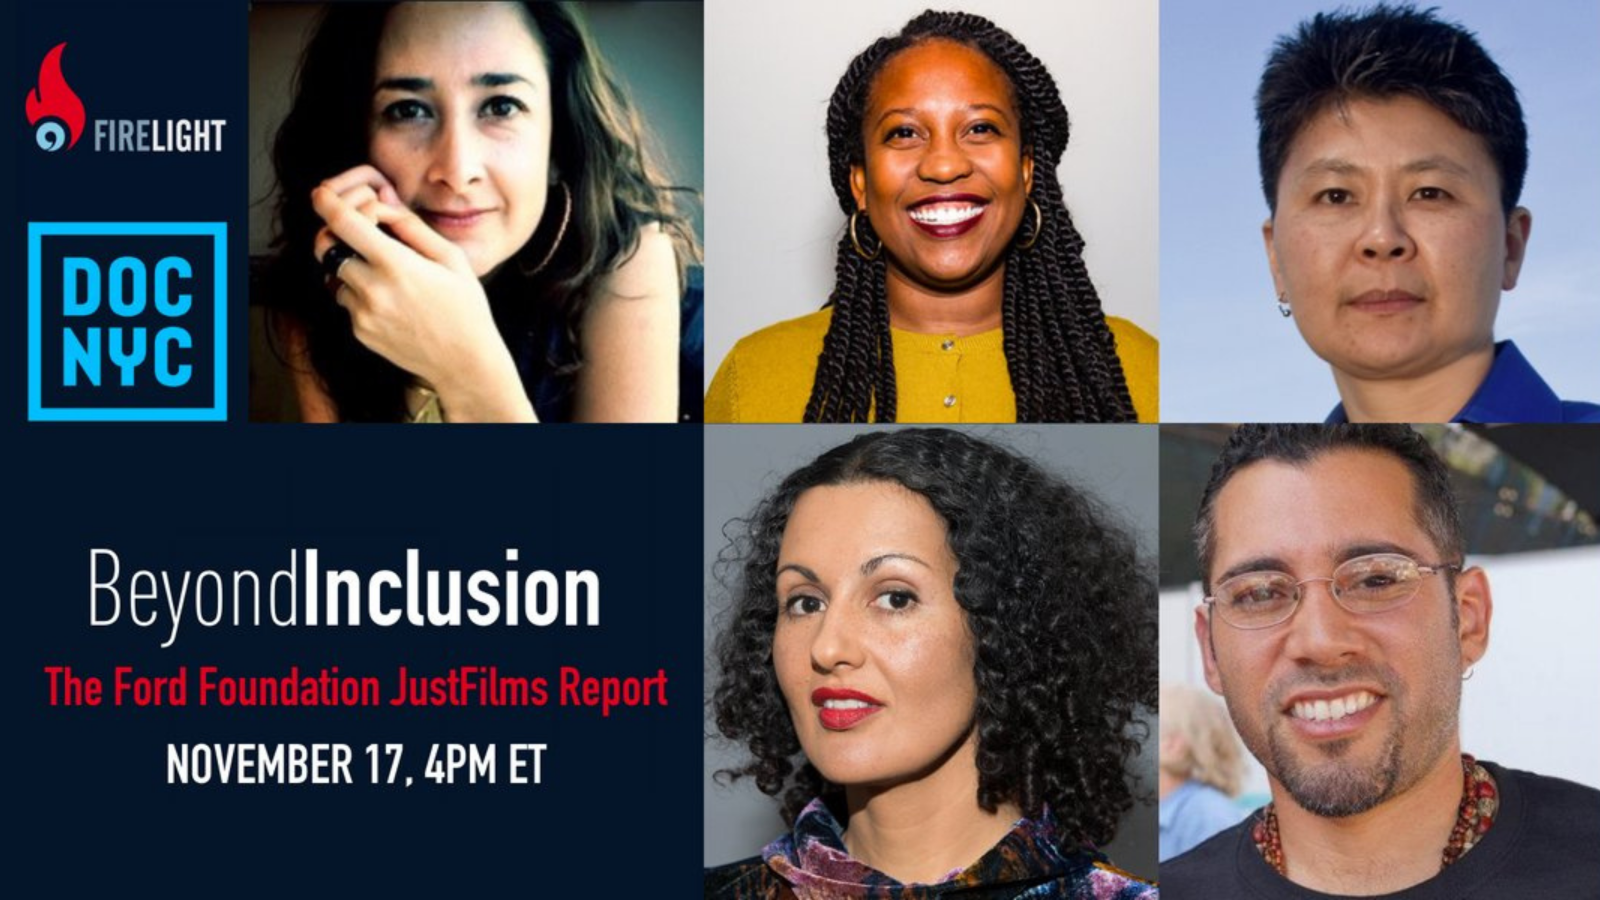 White and red text on a navy background reads Beyond Inclusion: The Ford Foundation JustFilms Report, November 17 at 4pm Eastern Time. The Firelight Media and Doc NYC logos are in the top left corner of the image. The rest of the image is a collage of portrait photos of four women of color and one man of color. In the top left is a woman with light brown skin and dark brown hair and eyes. In the top middle is a Black woman with dark brown skin and long black hair in twists. In the top right is an Asian woman with medium brown skin and dark brown hair. In the bottom left is a woman with medium brown skin and shoulder-length dark curly hair. In the bottom right is a man with medium brown skin, short dark hair, and glasses.